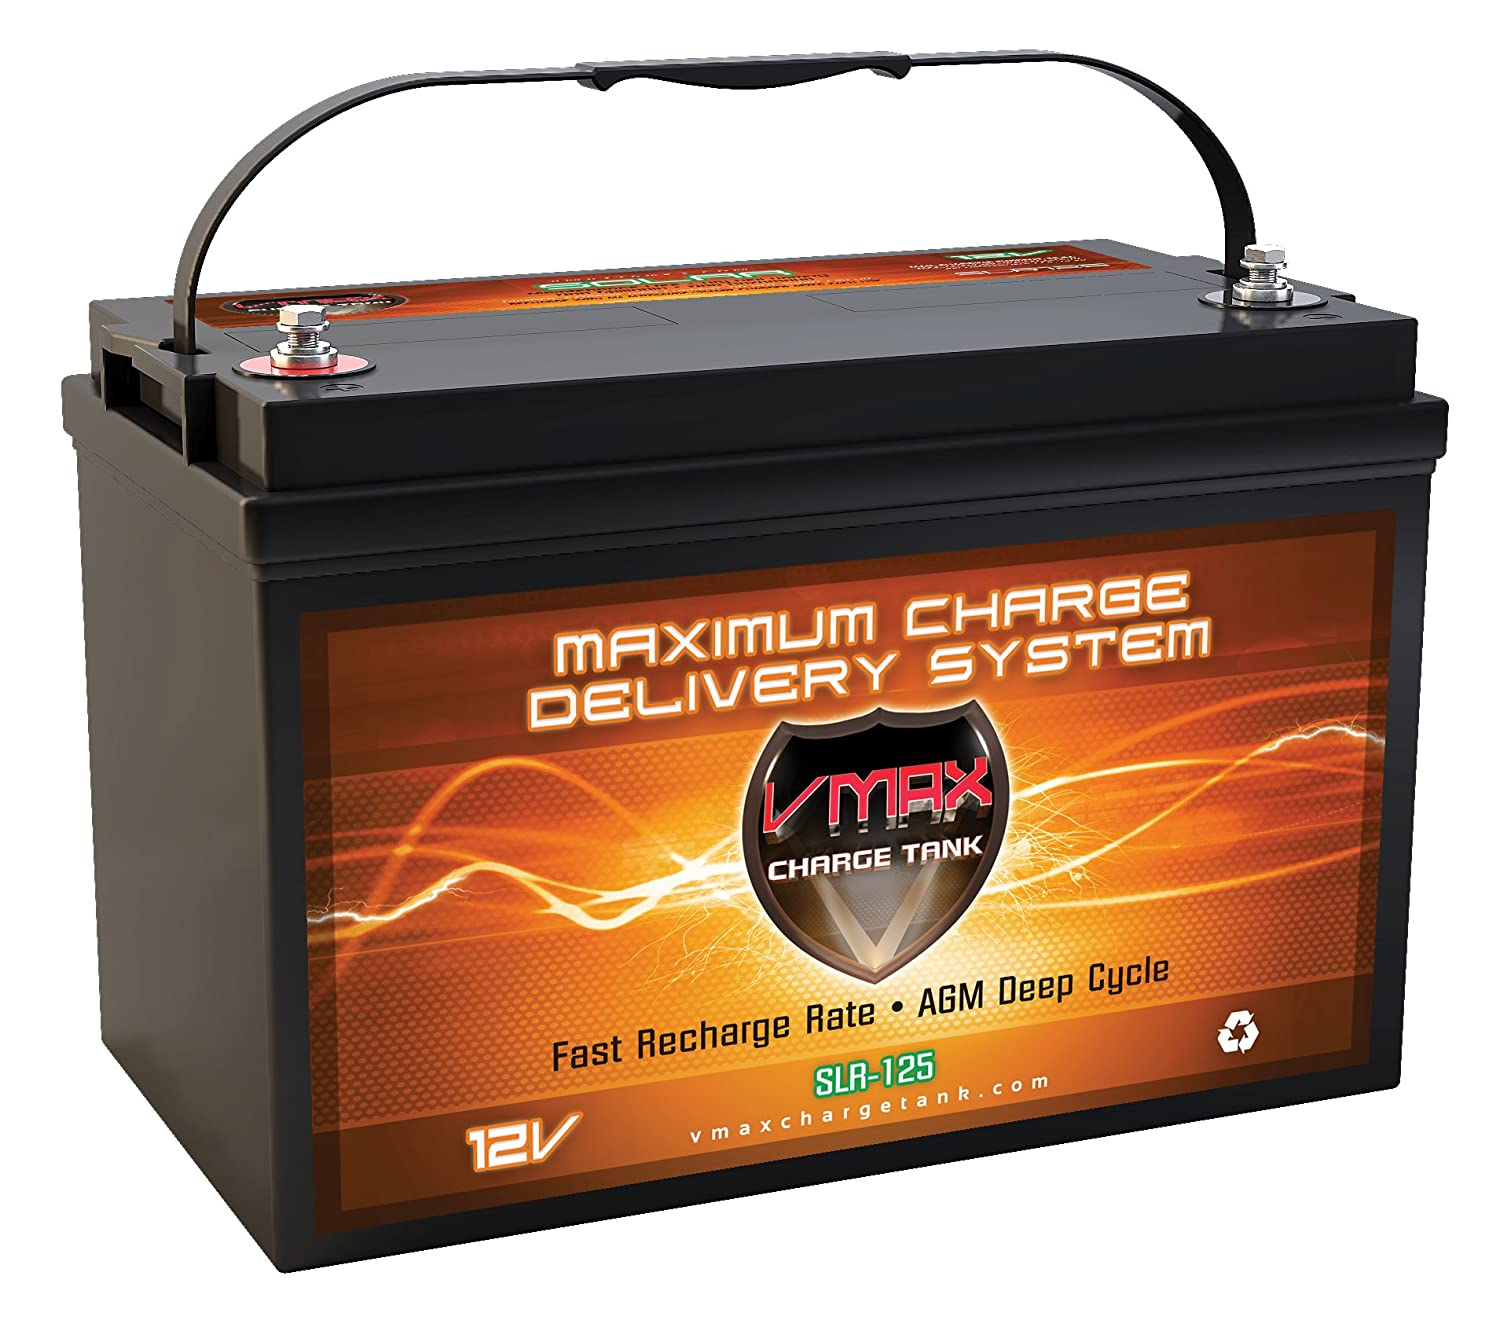 Best Camper Van Batteries - VMAX